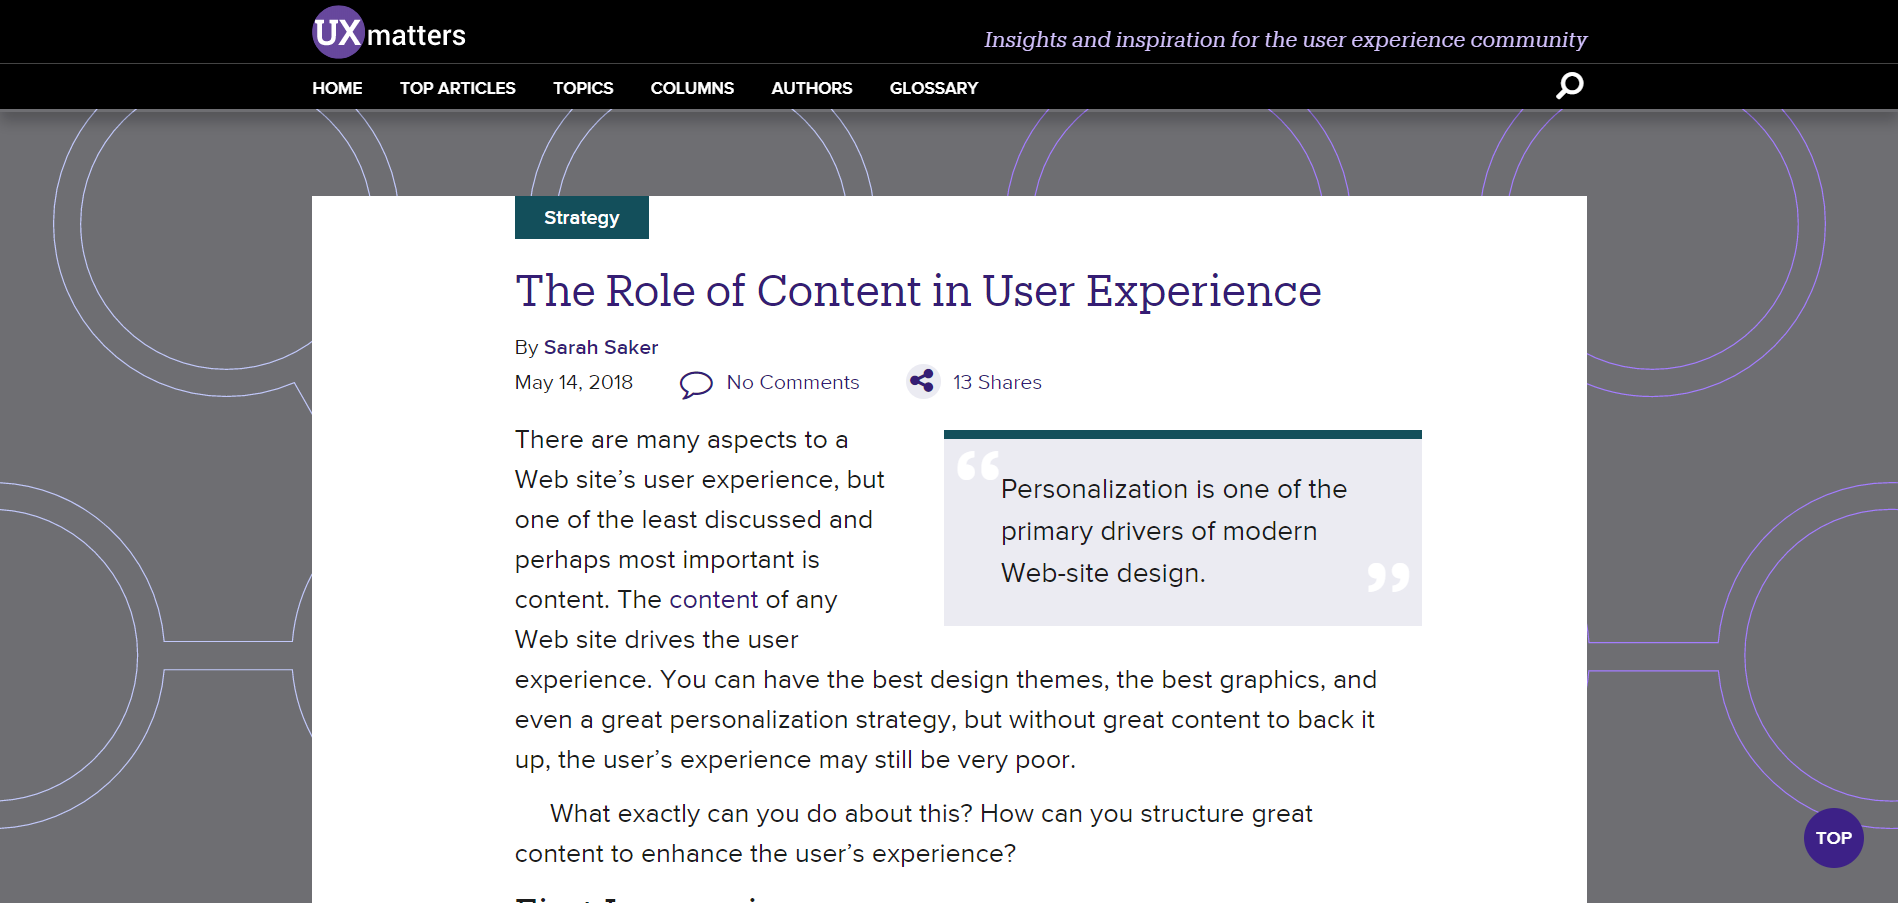 • The Role of Content in User Experience by Sarah Saker for Uxmatters